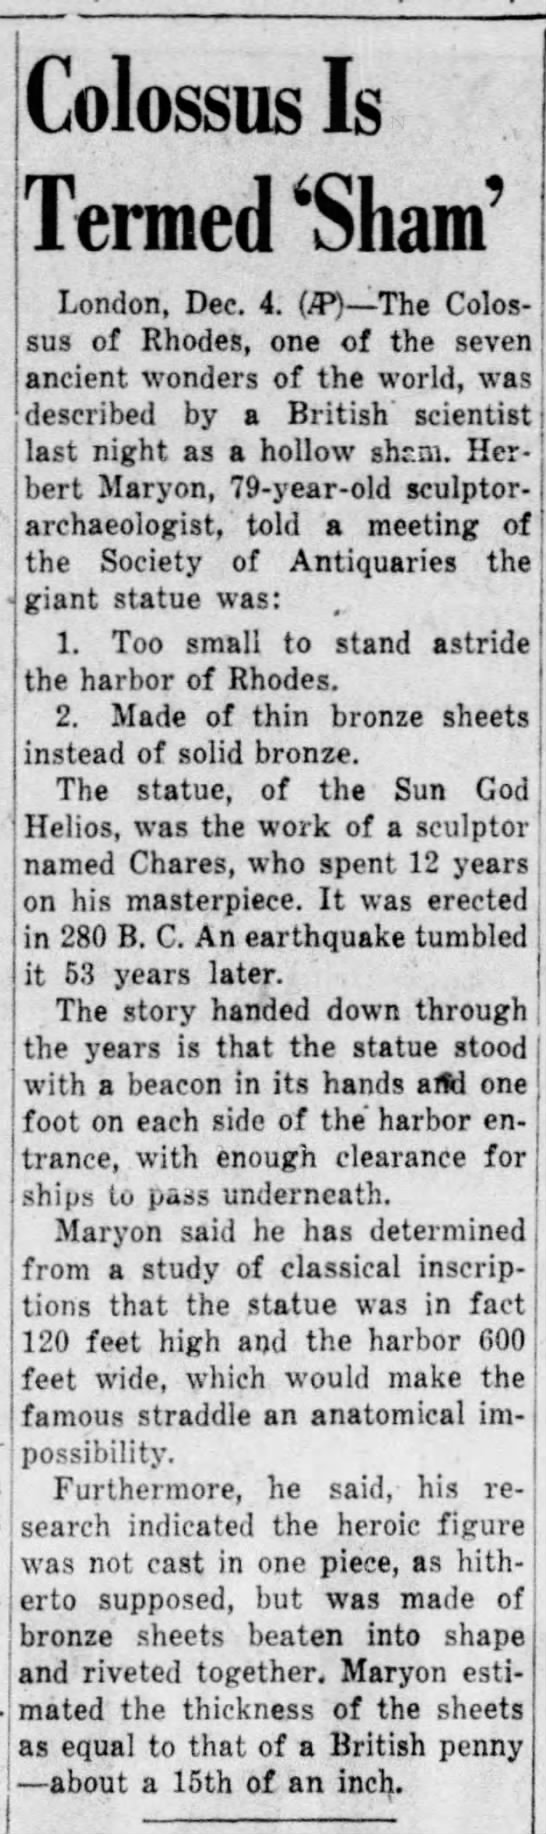 Herbert Maryon on the Colossus of Rhodes, The Plain Speaker, 4 December 1953 - Colossus Is Termed 'Sham' London, Dec. 4. (JP)...